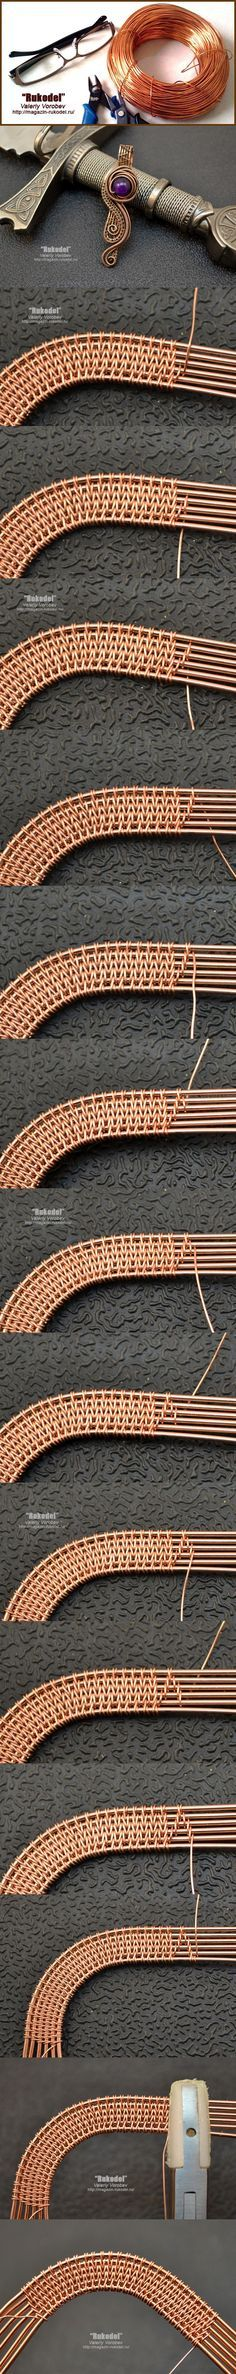 Wire wrap tutorial - magazin-rukodel.ru/...